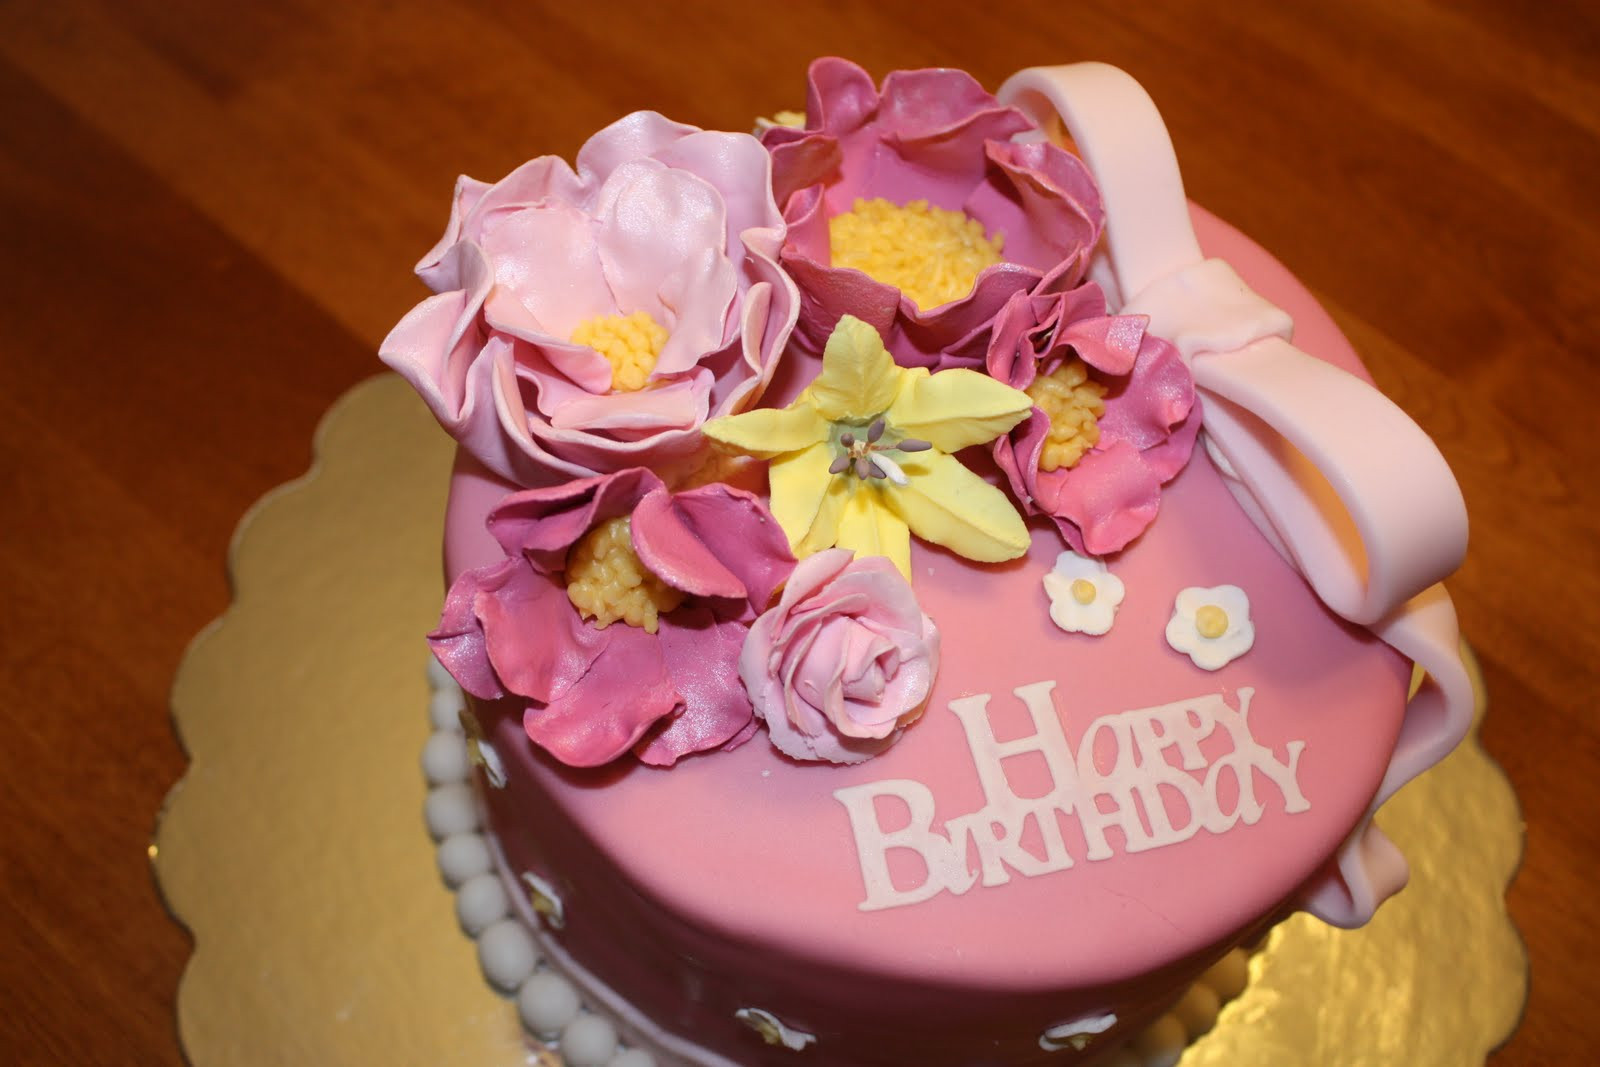 Best ideas about Birthday Cake Flowers . Save or Pin Birthday Flowers Now.